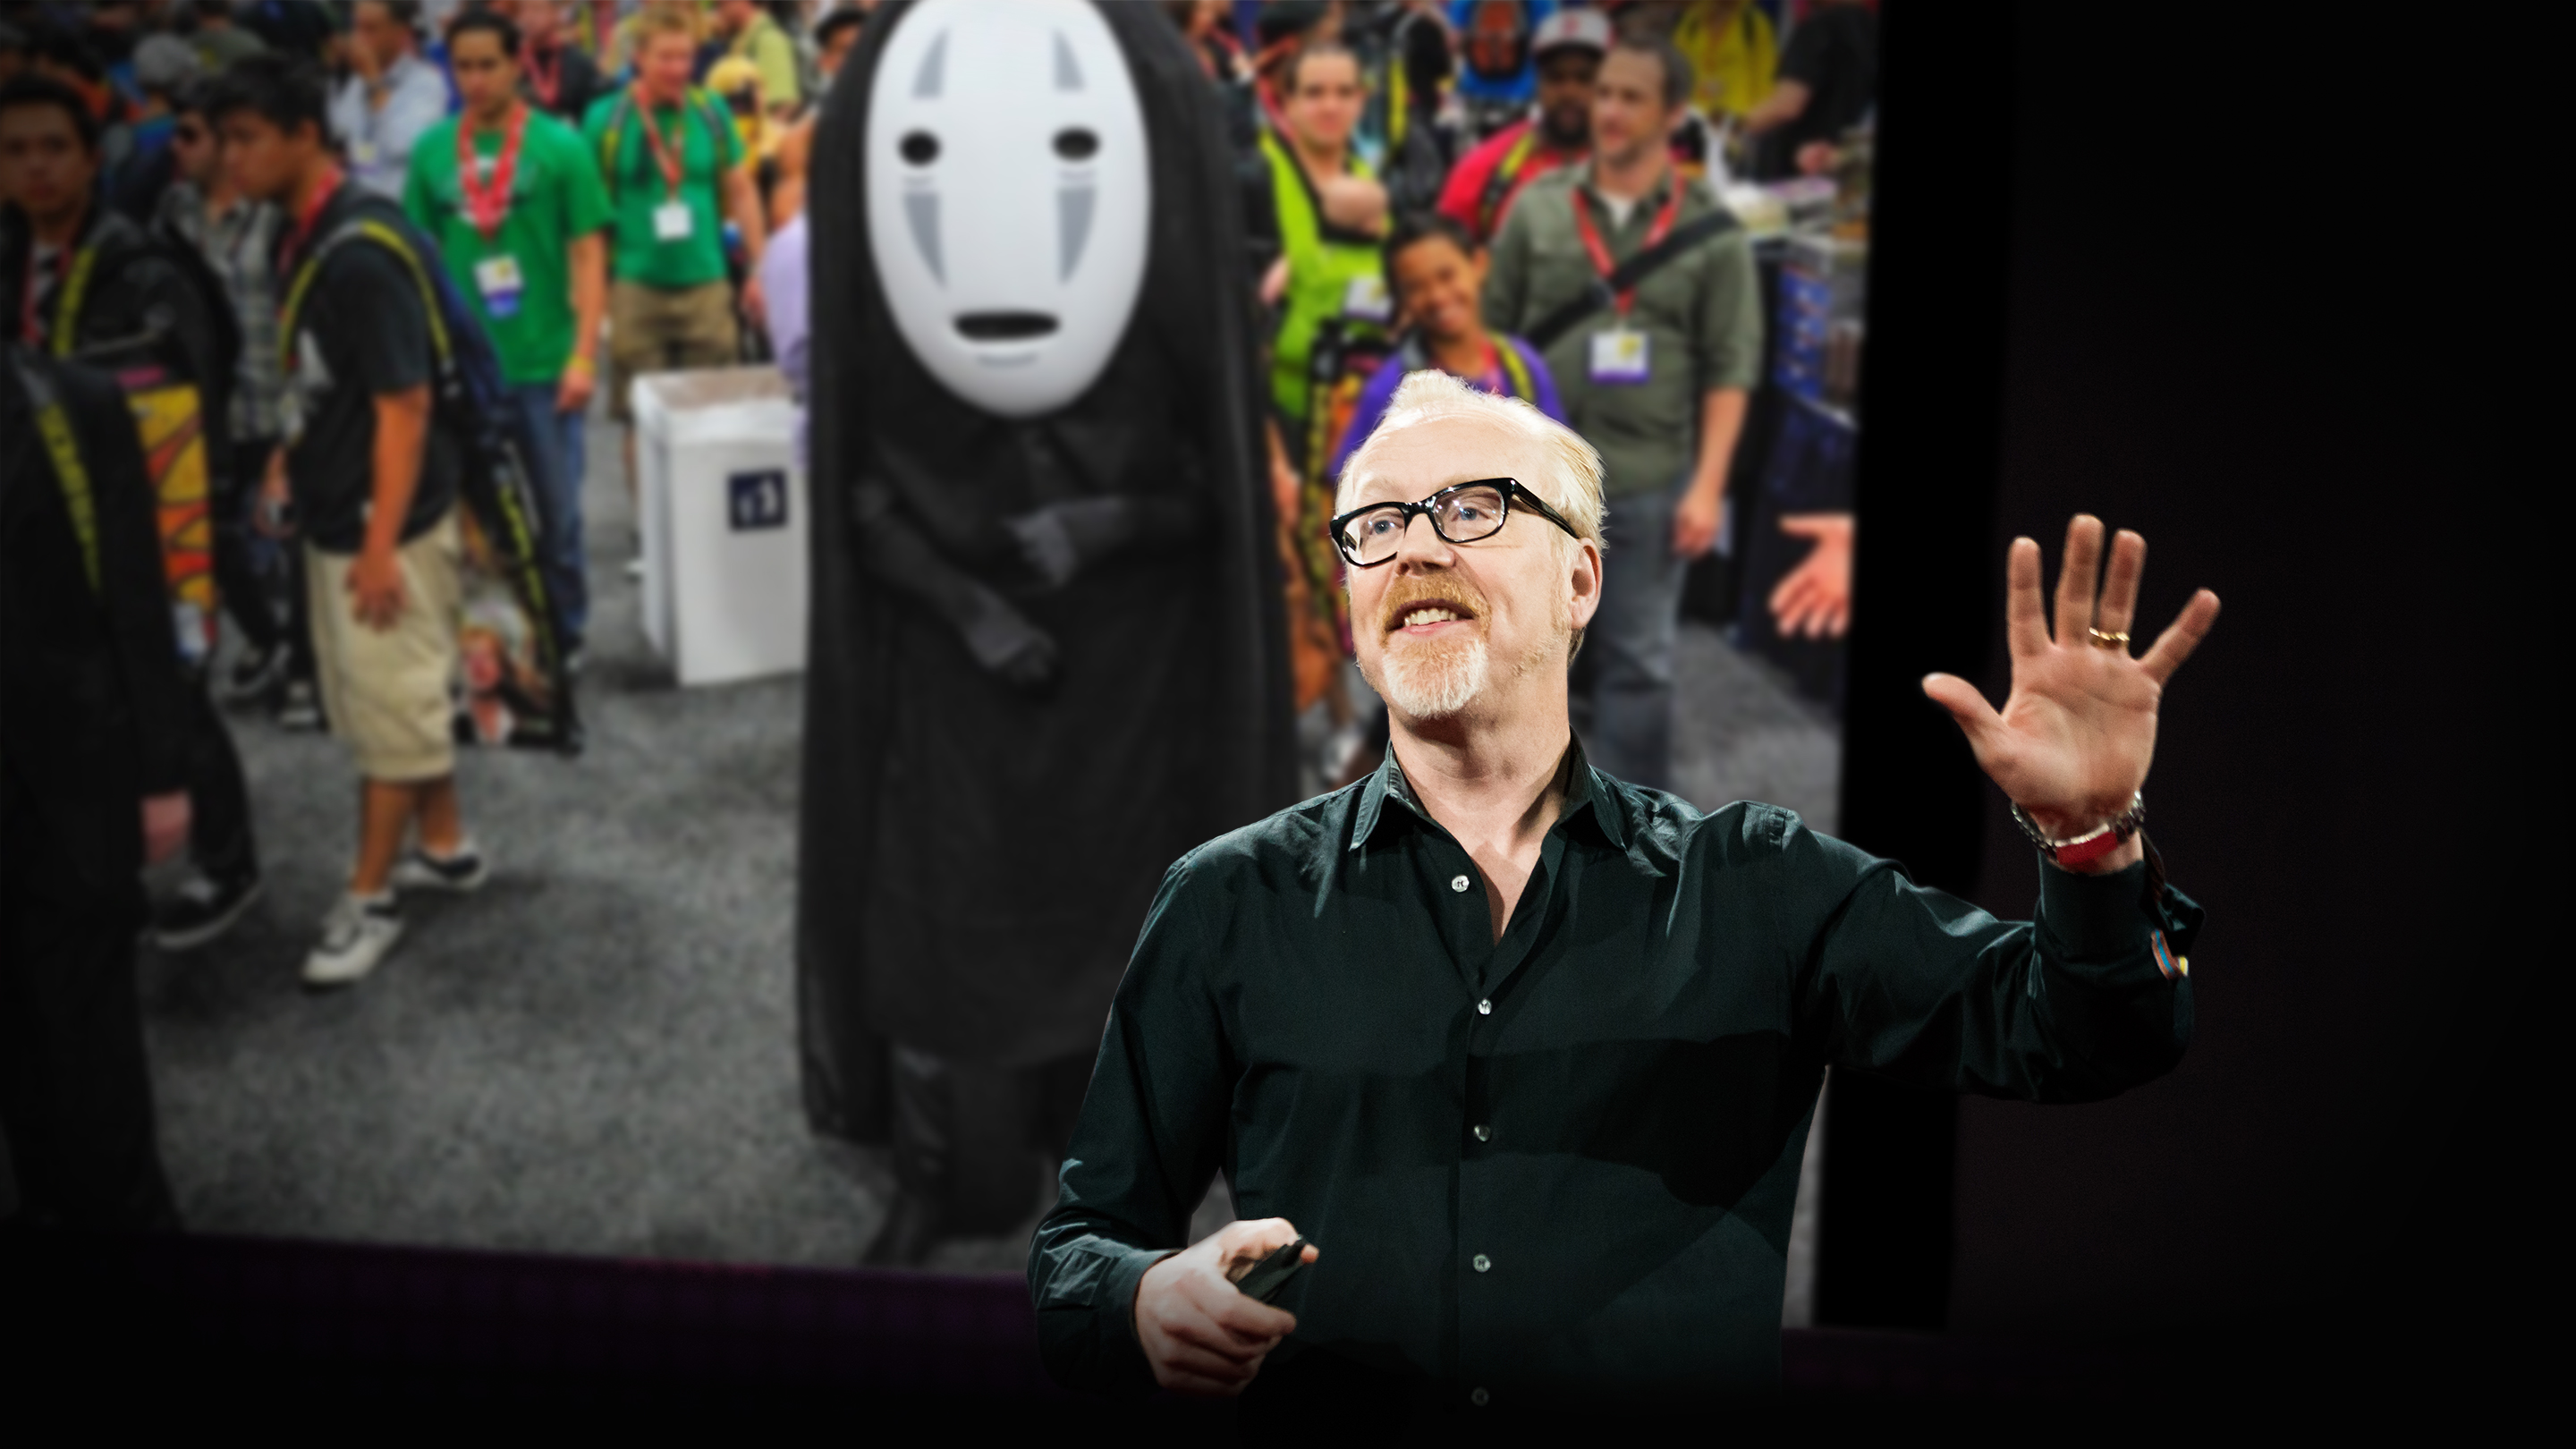 Adam Savage: My love letter to cosplay thumbnail